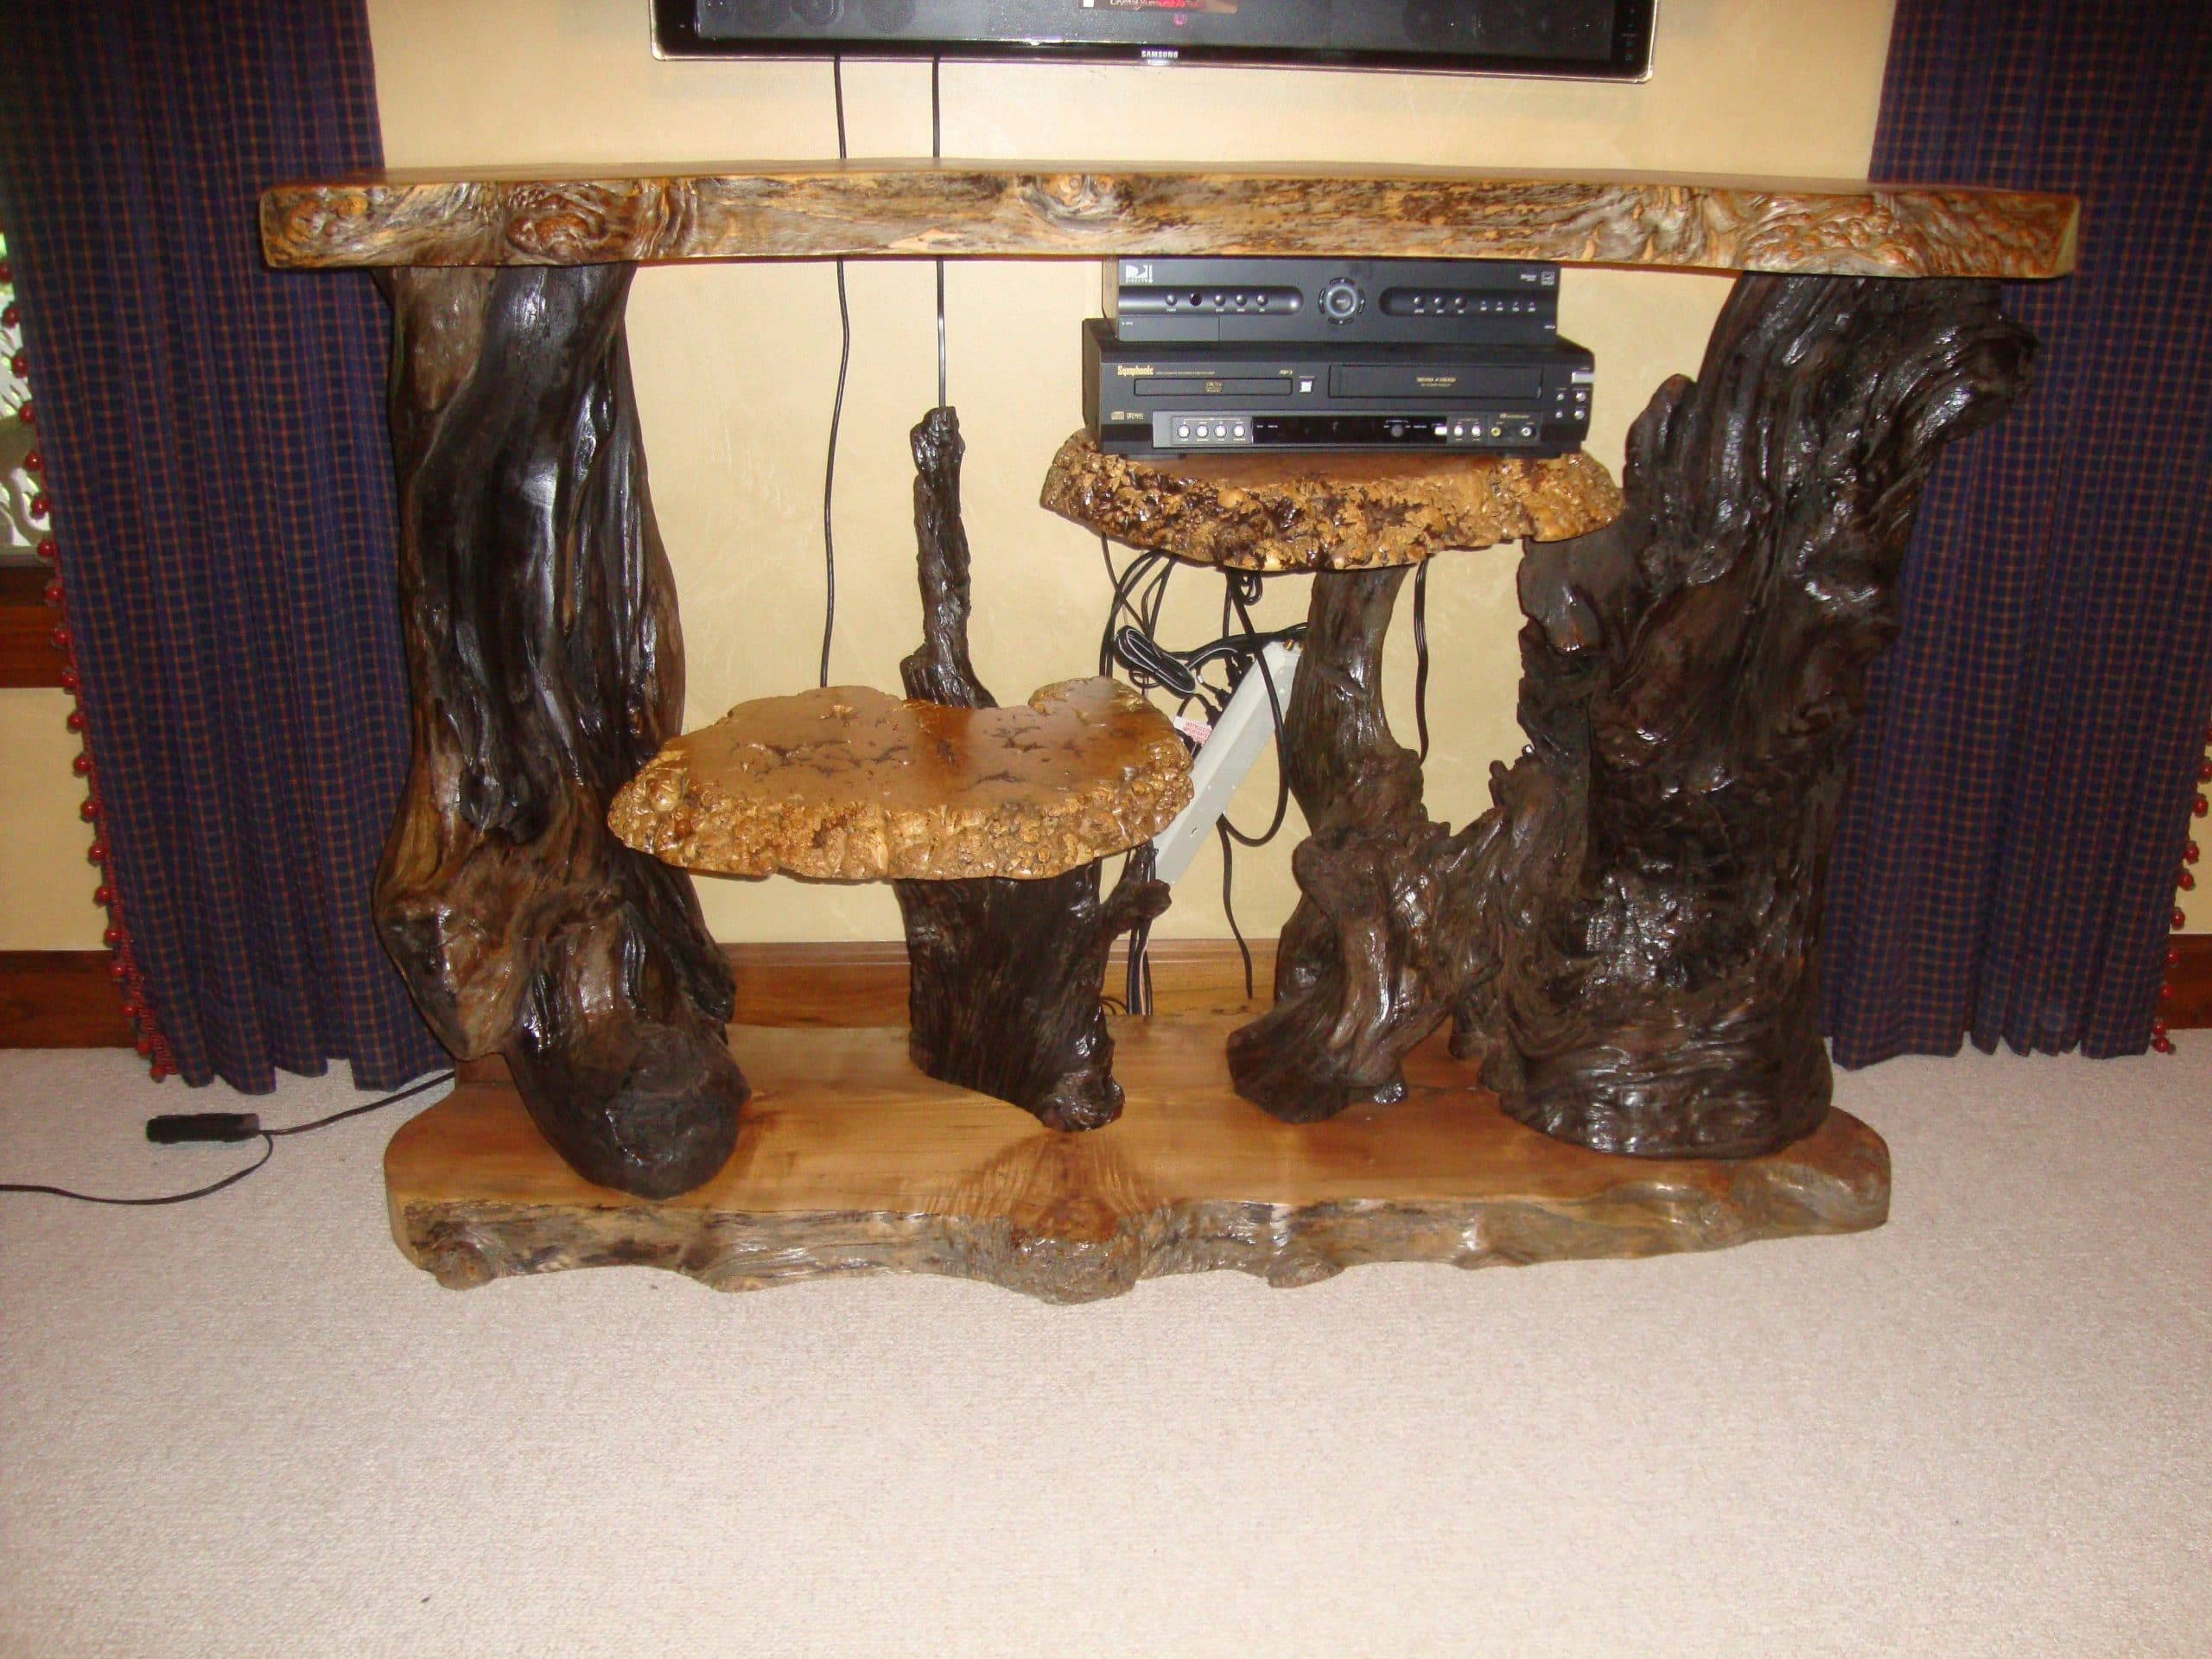 Burl furniture crafted using natural live edge wood slabs